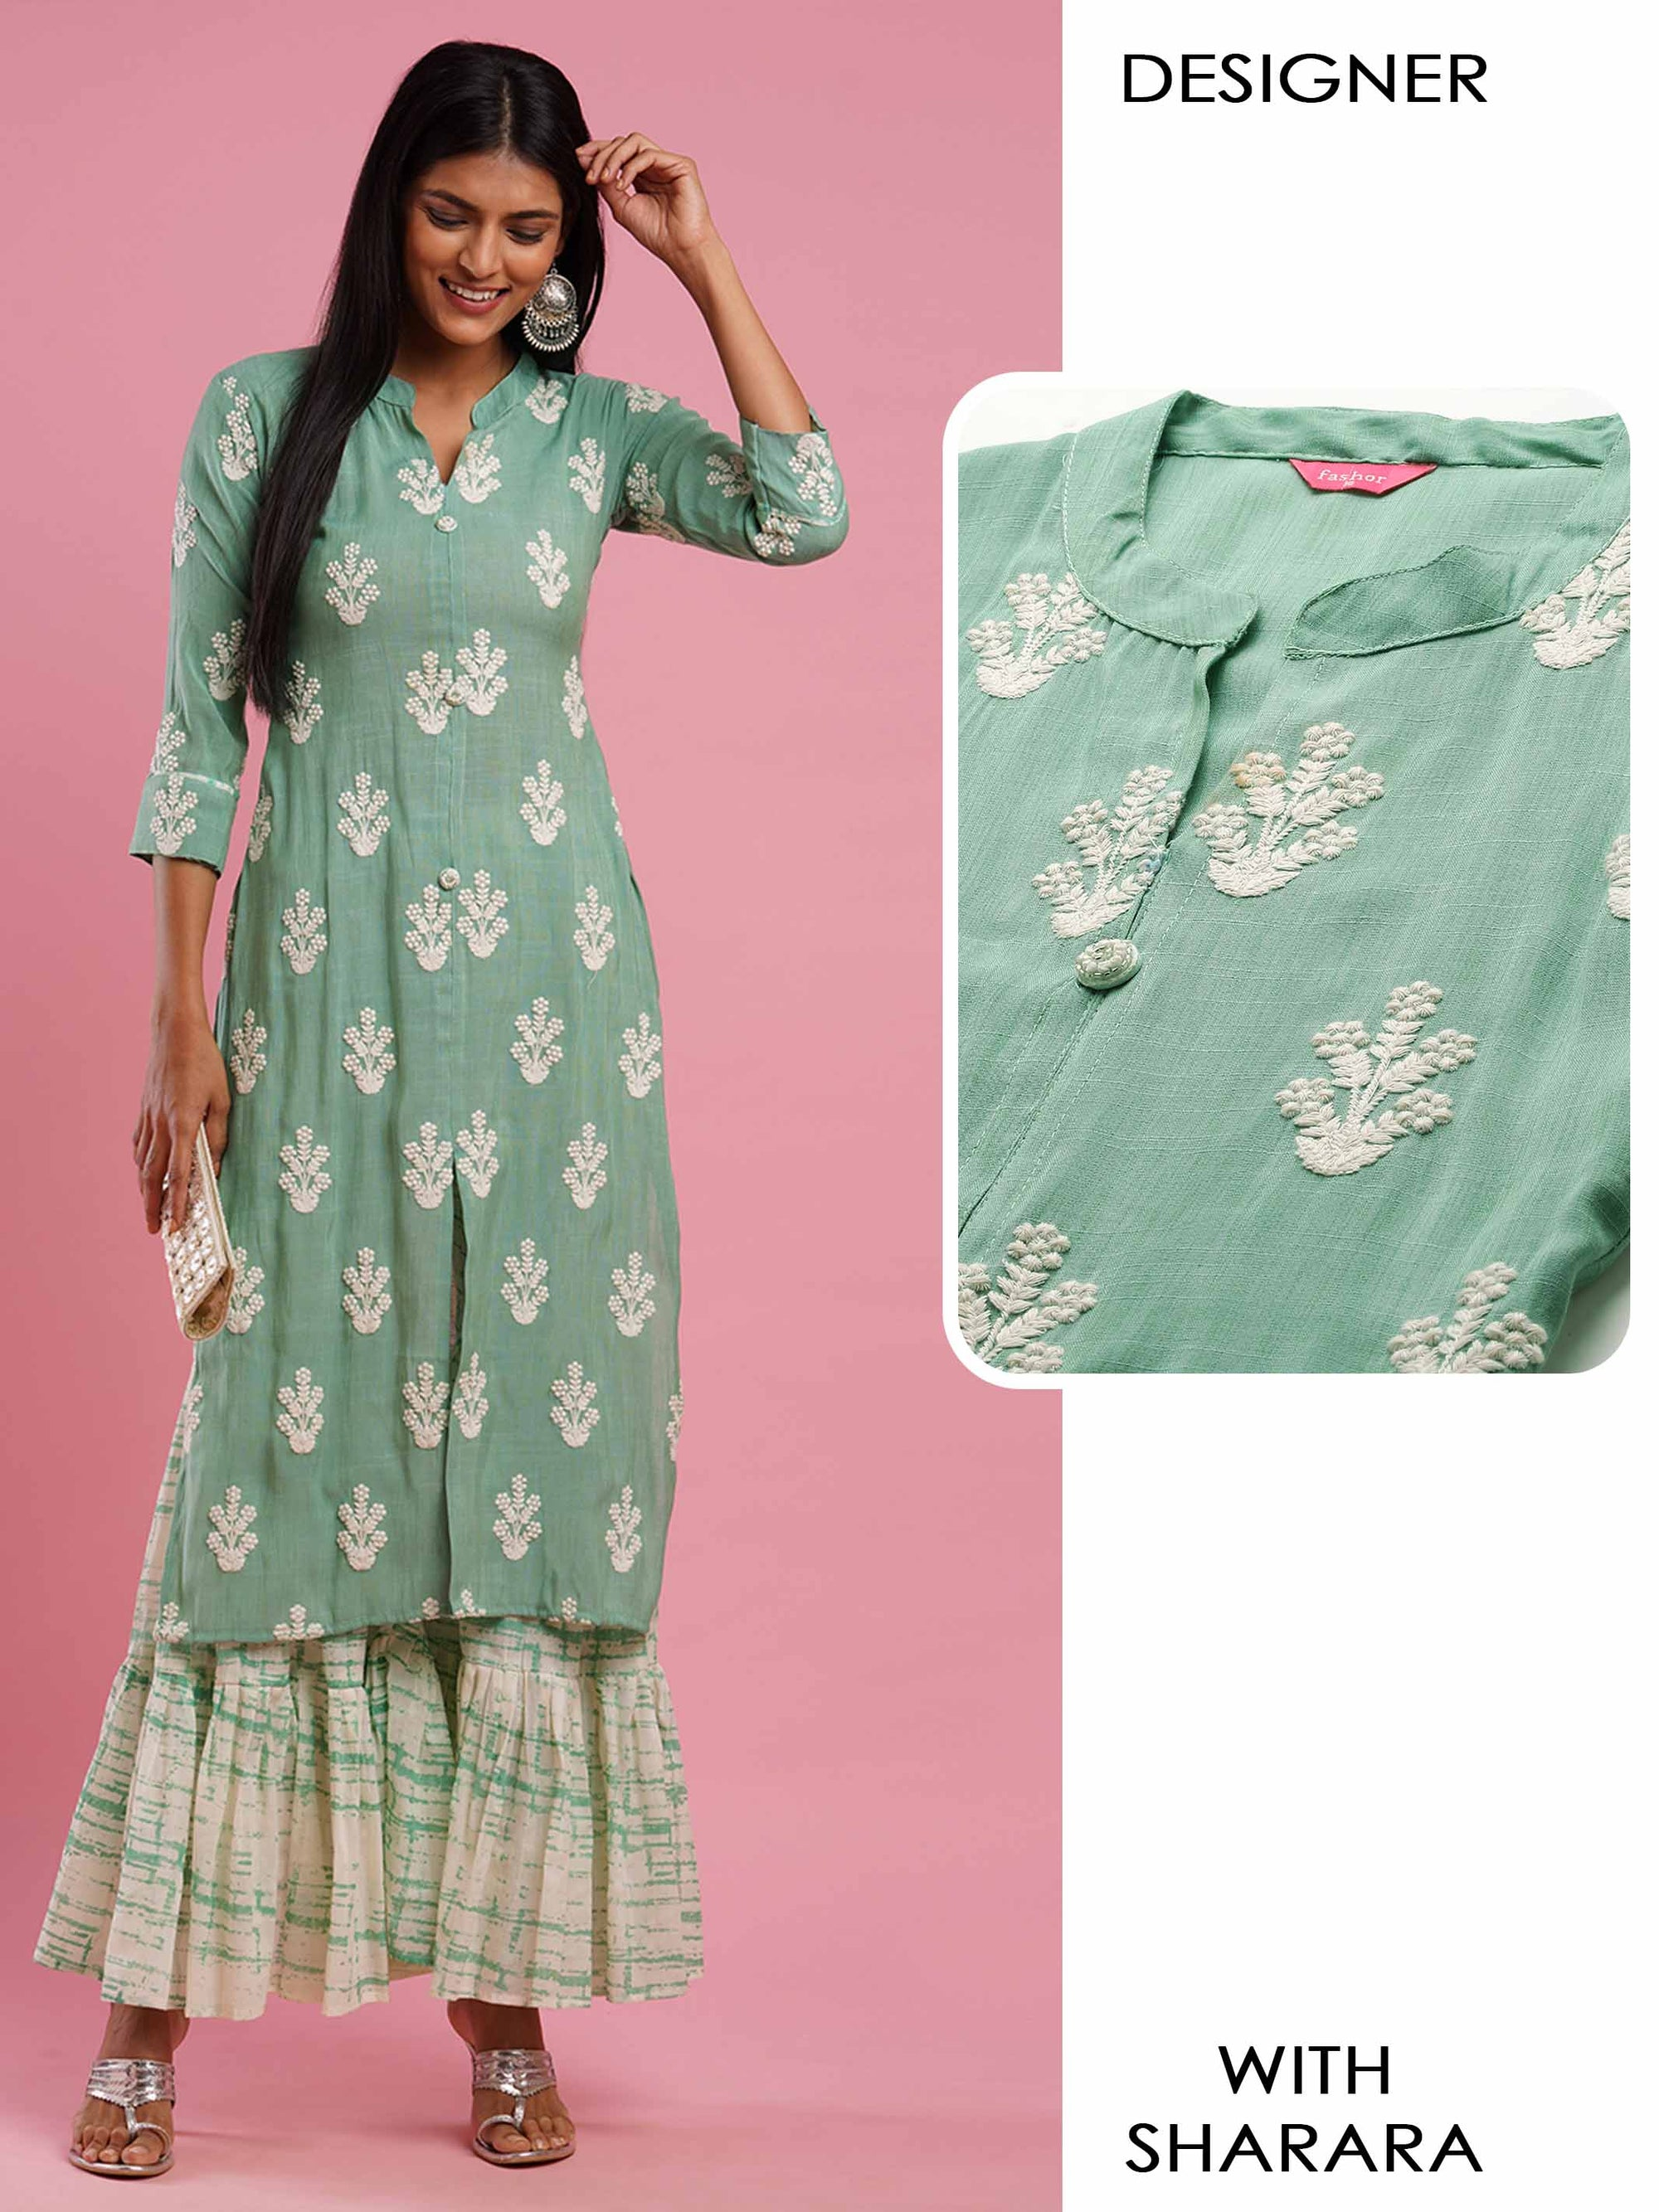 Floral Embroidered Straight Kurta with Distressed Printed Sharara - Mint Green